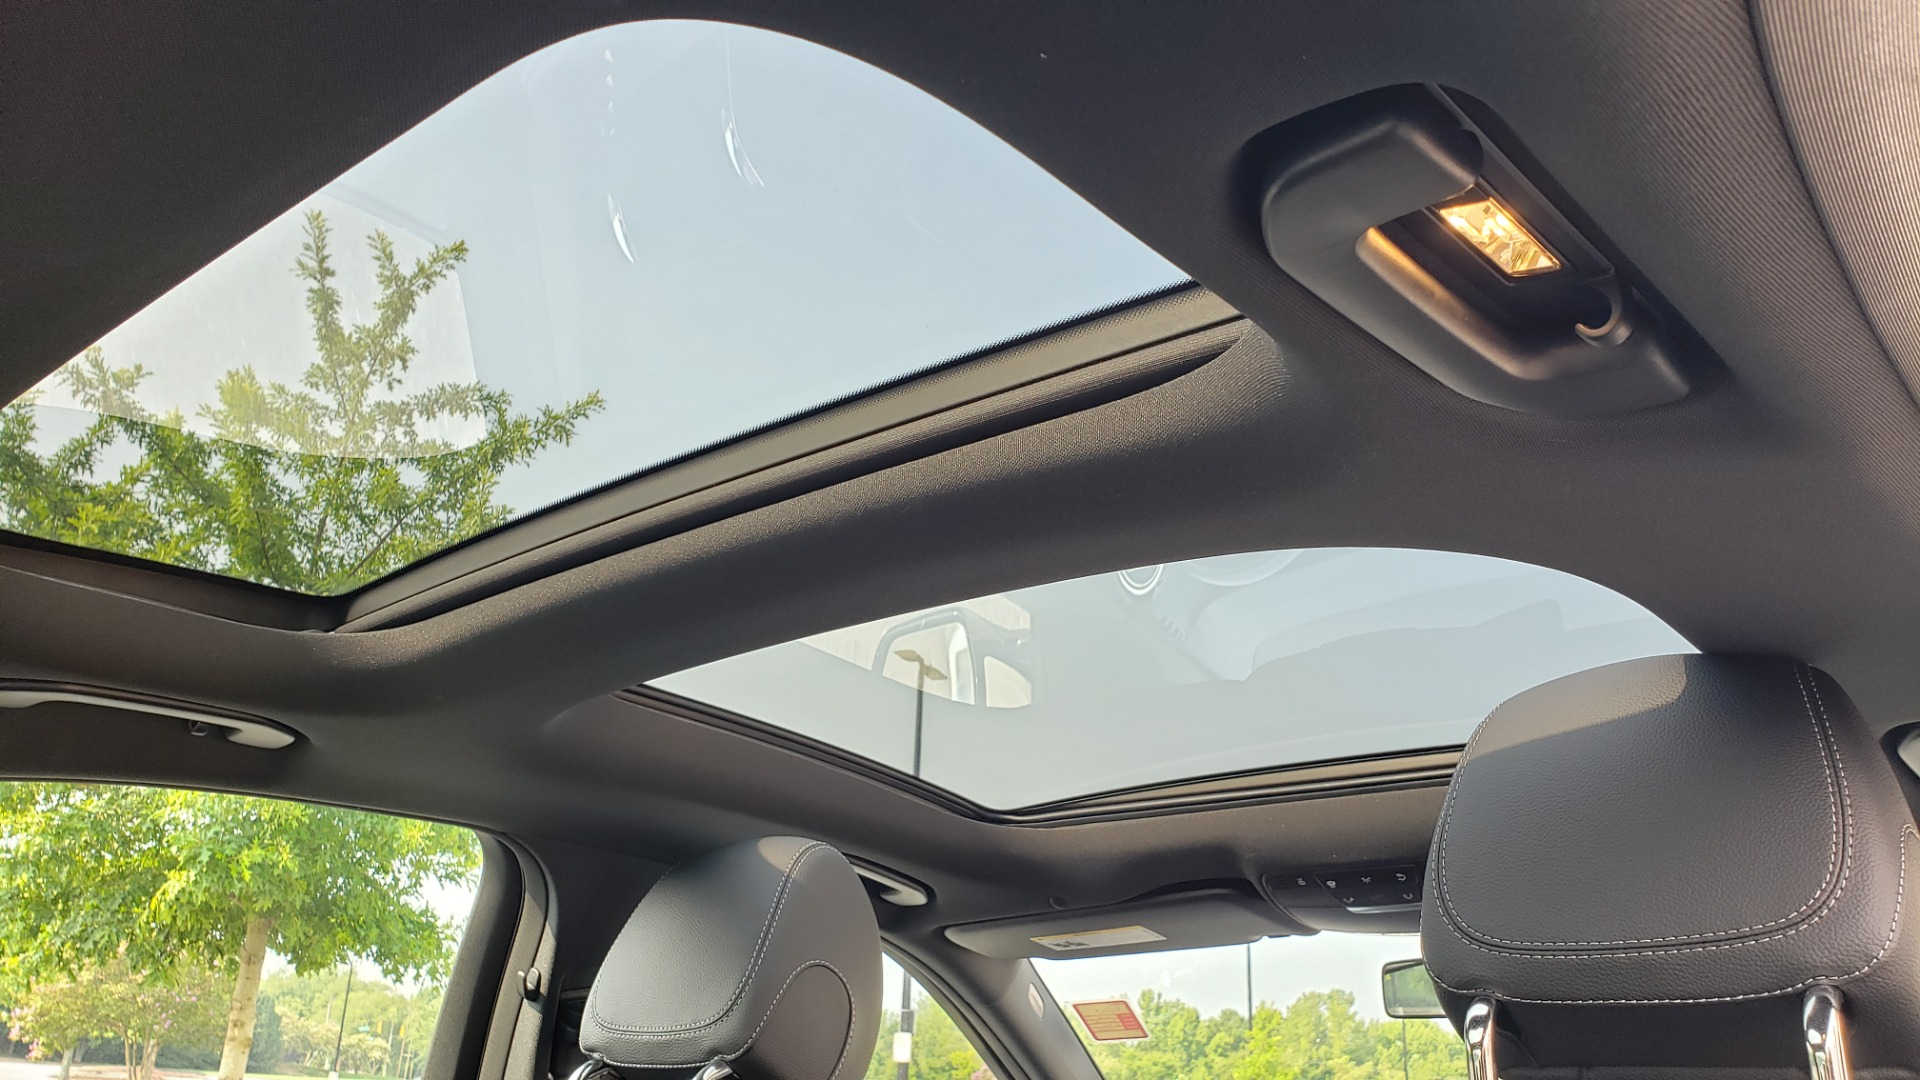 Used 2018 Mercedes-Benz E-CLASS E 300 4MATIC / PREMIUM / NAV / PANO-ROOF / BURMESTER / REARVIEW for sale $41,995 at Formula Imports in Charlotte NC 28227 71